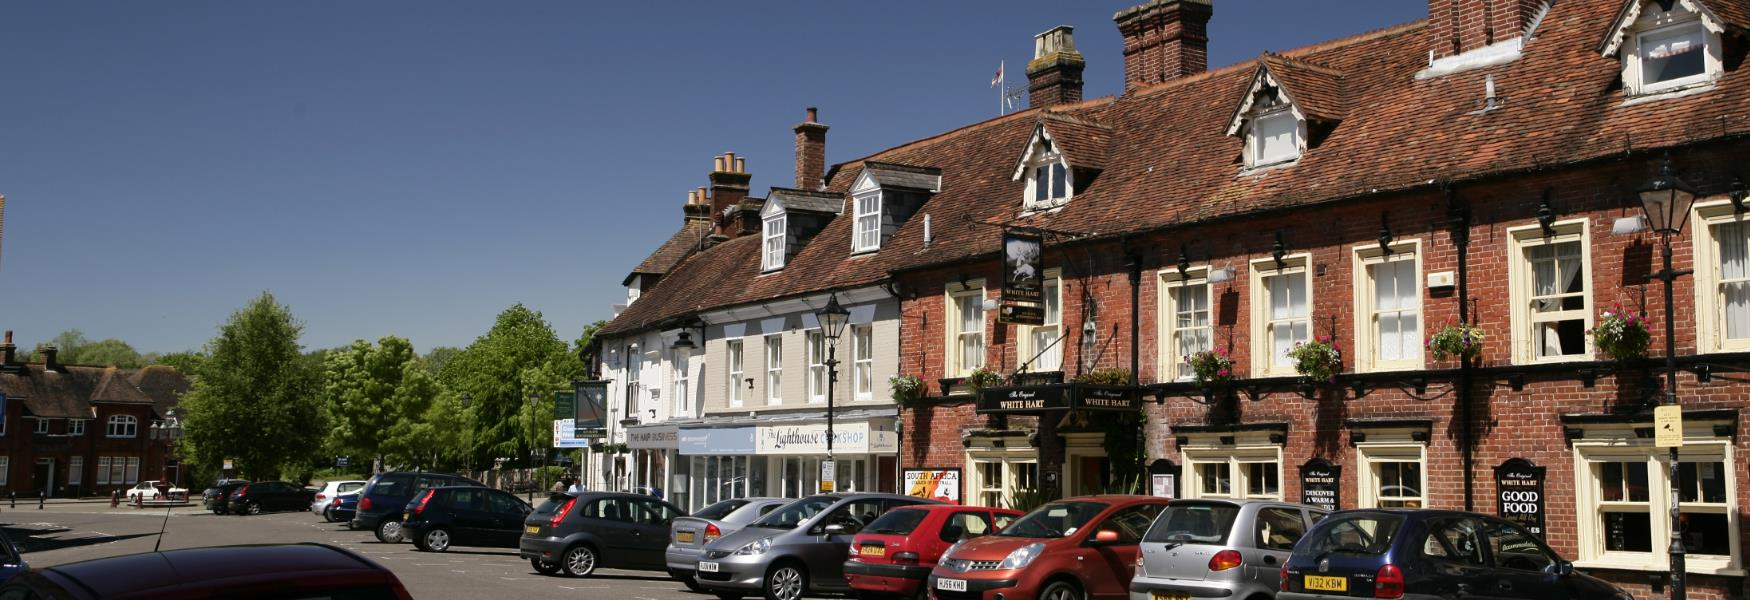 High Street shops and pub in Ringwood in the new forest